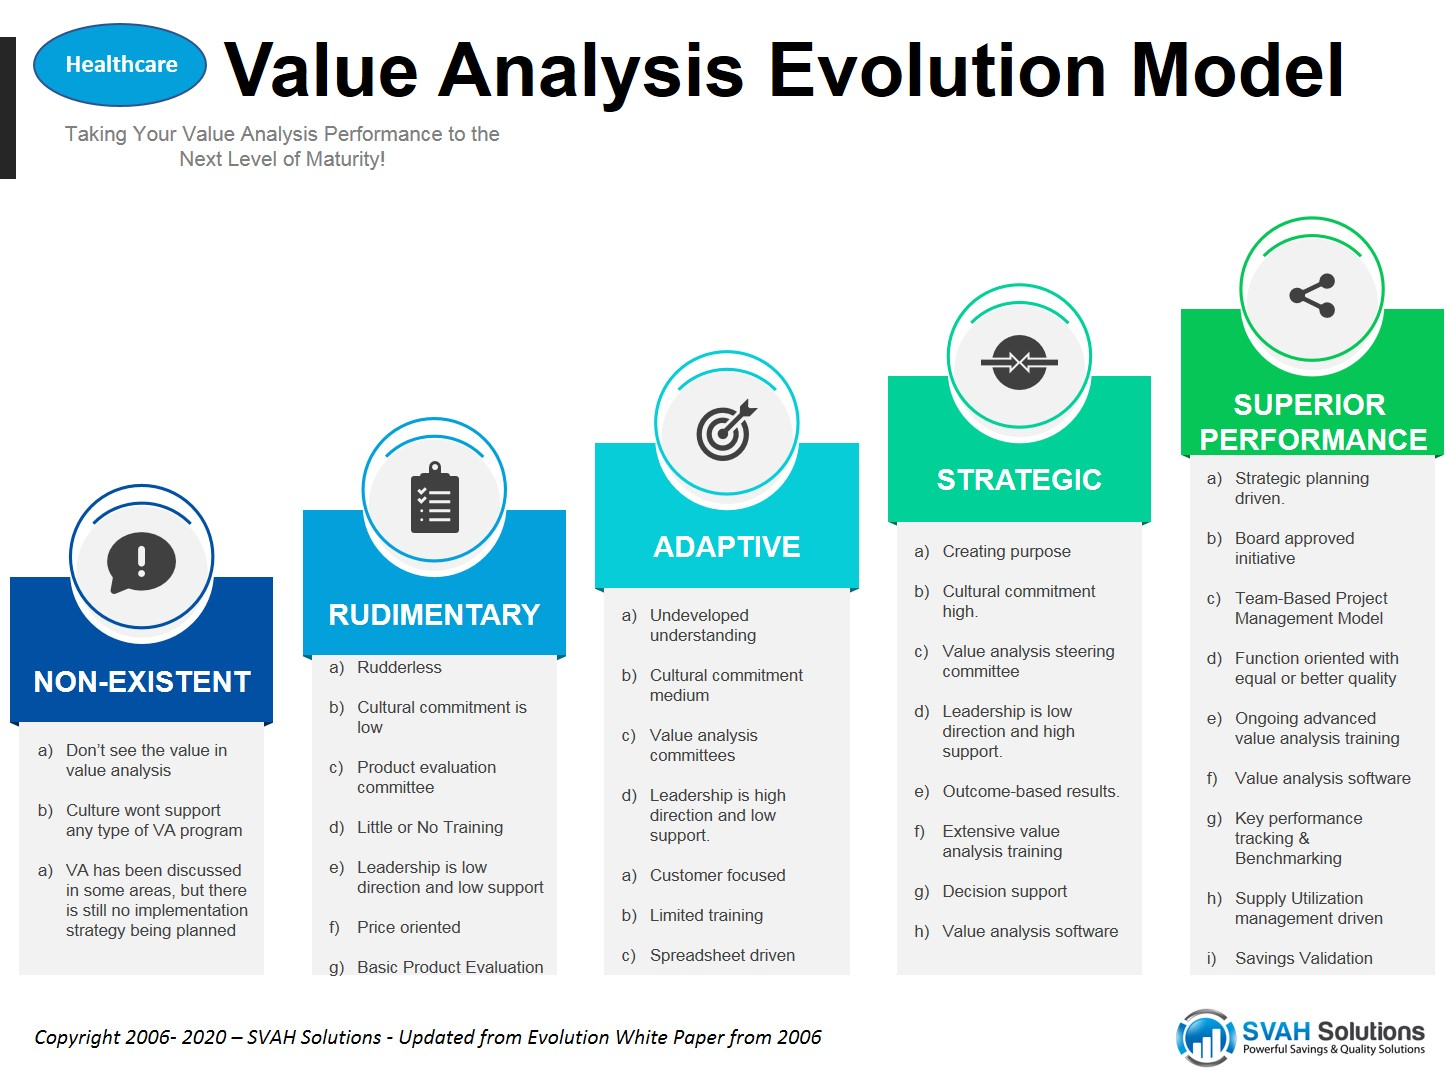 Healthcare Value Analysis Evolution SVAH Solutions